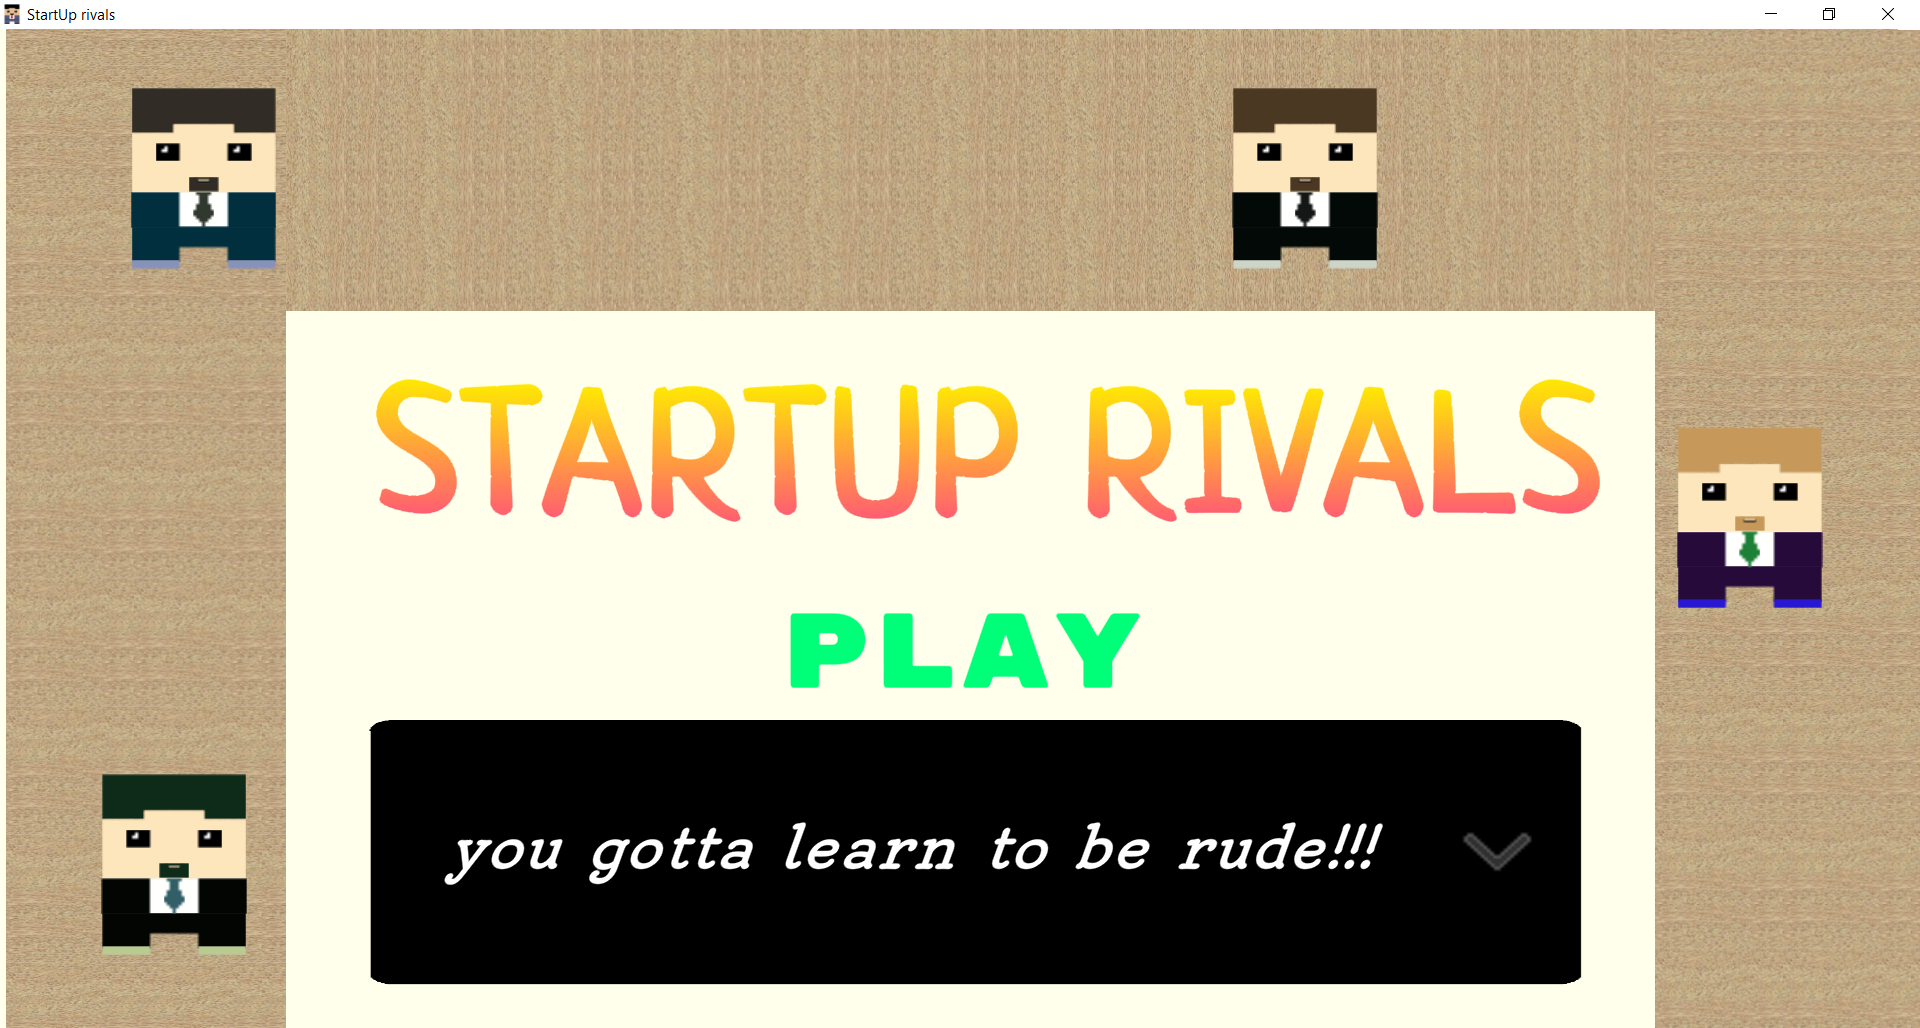 StartUp Rivals